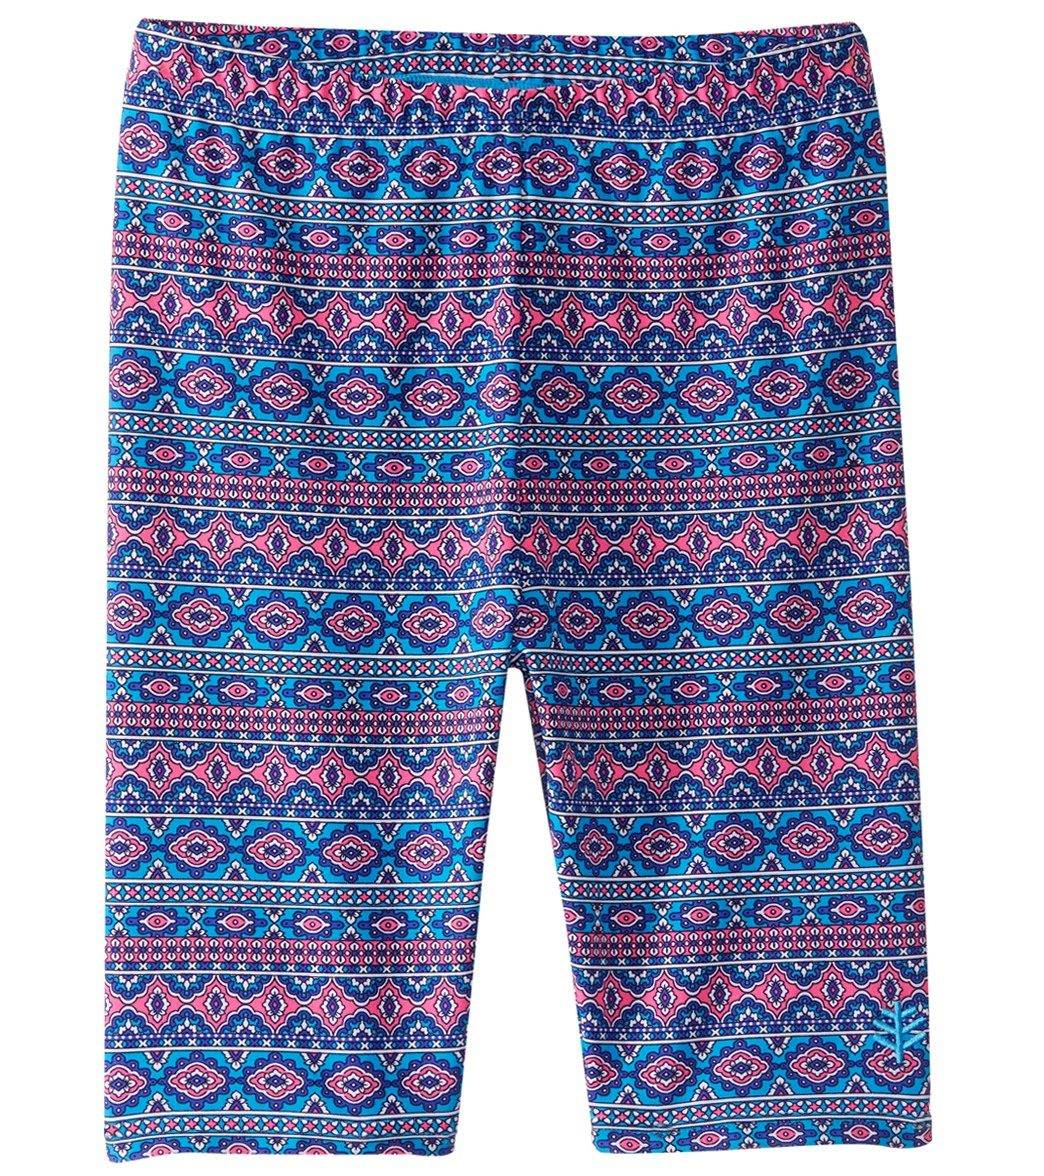 1f1c0c808d Coolibar Girls' UPF 50 Printed Swim Shorts at SwimOutlet.com